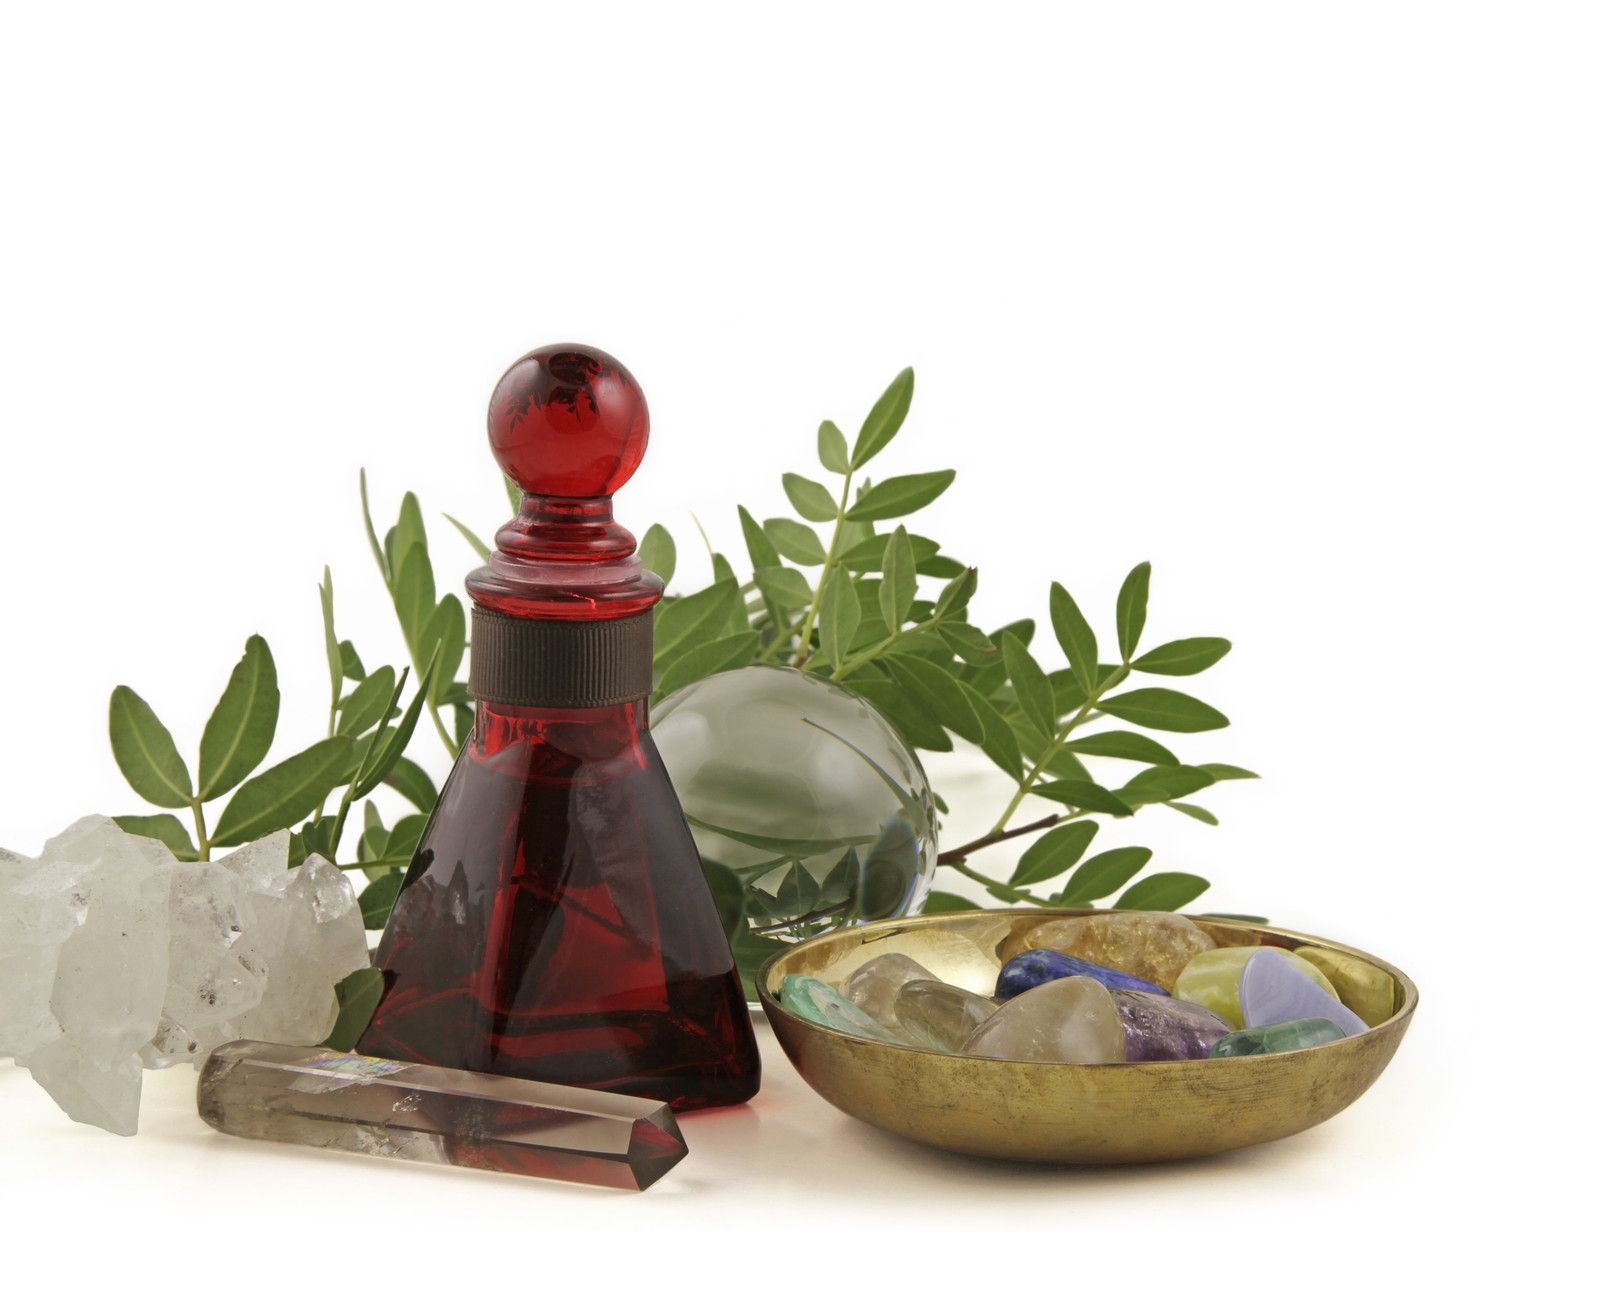 red bottle, massage wand and dish of crystals